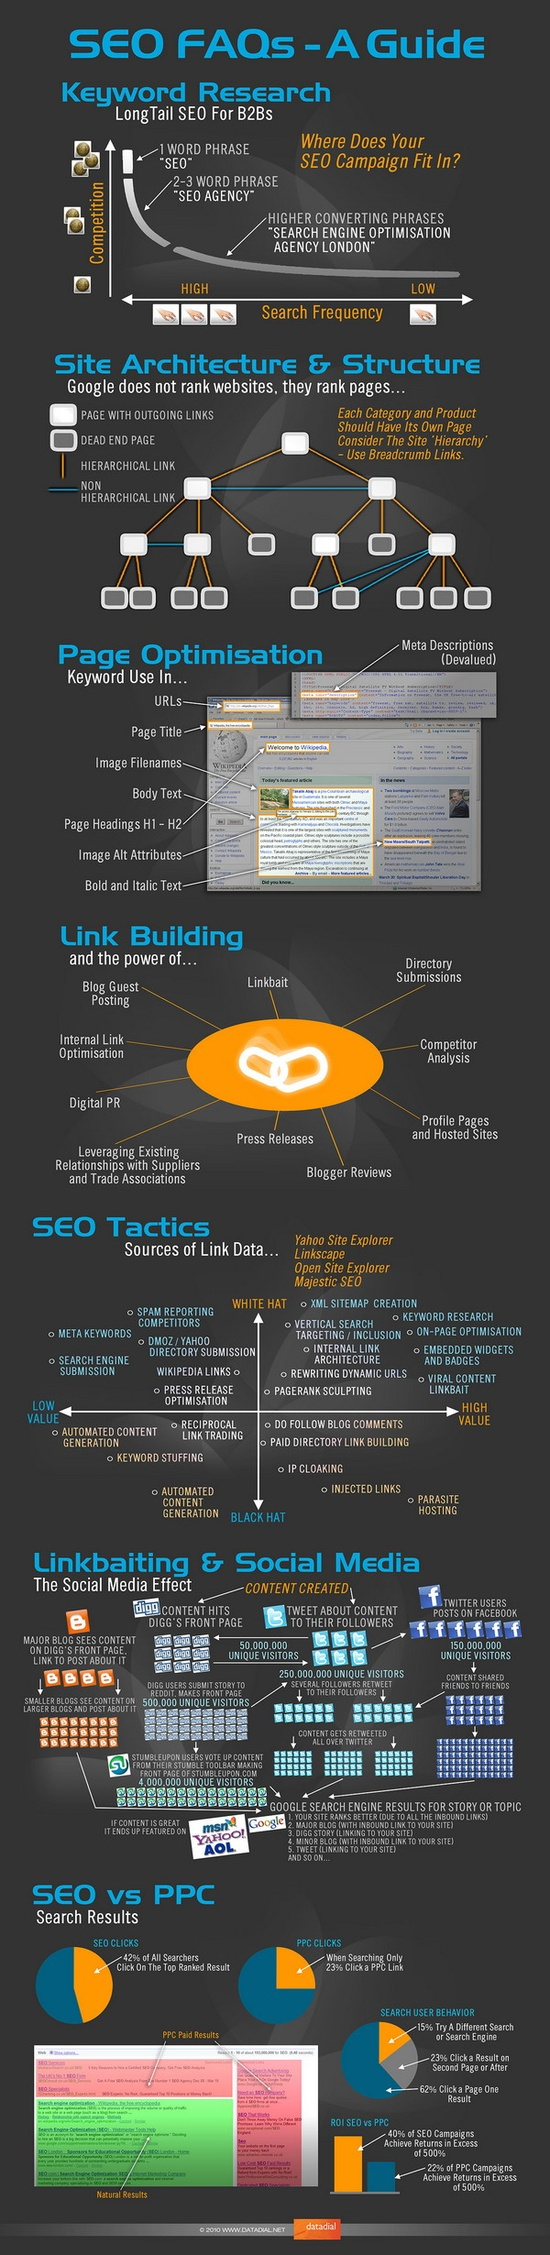 seo faq guide infographic